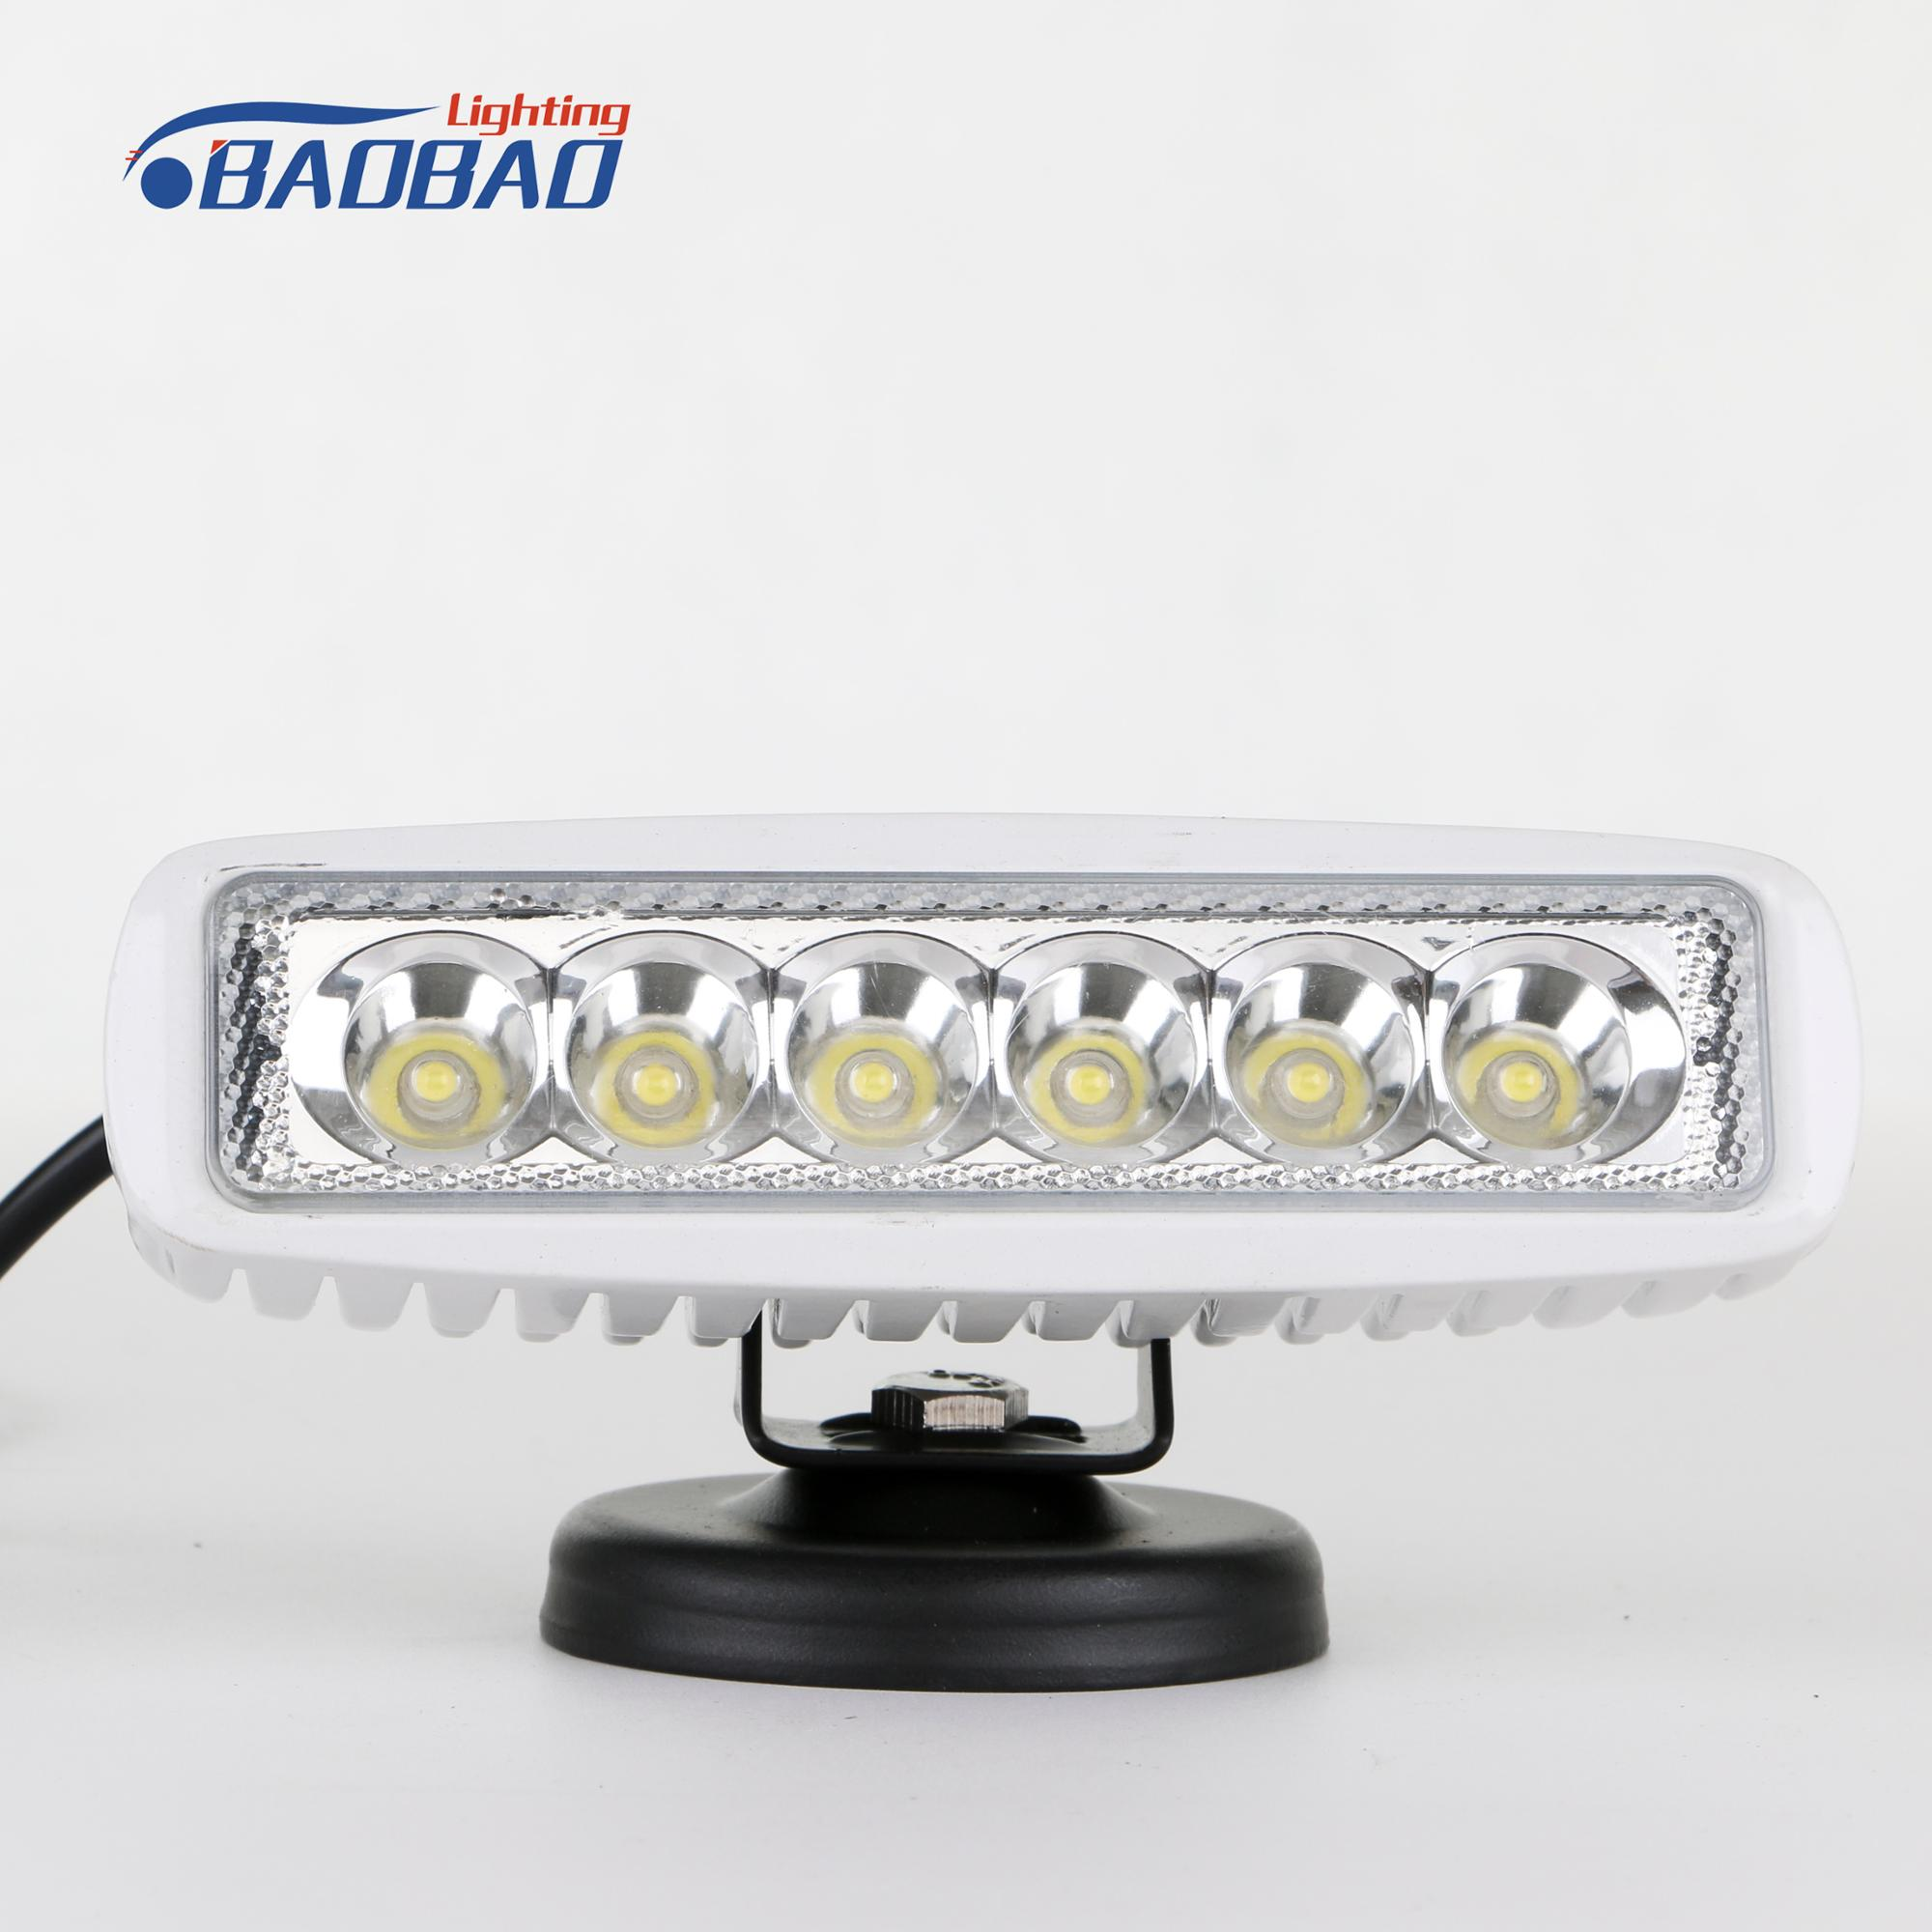 Tractor ATV Car Truck Driving 1580 Lumen Strobe 18w LED Work Light Bar LED Work Light